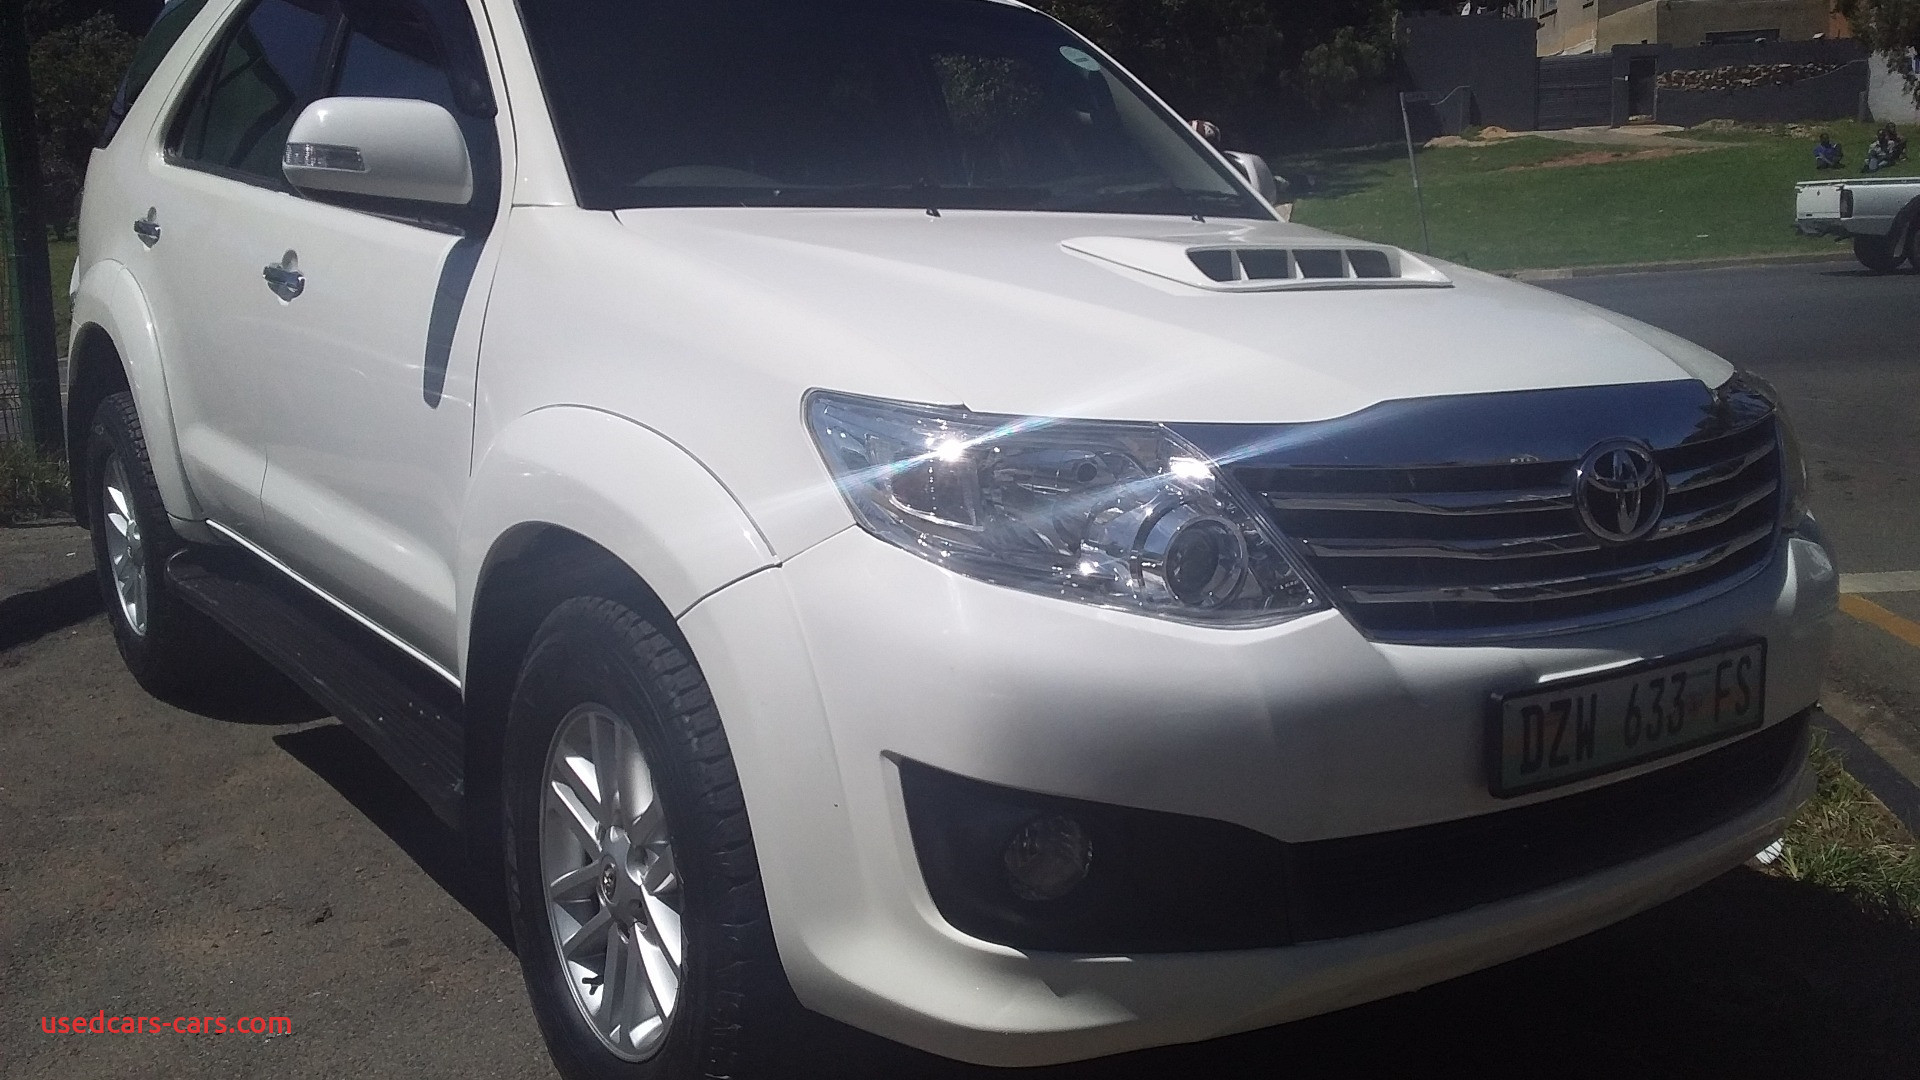 Used Cars for Sale Za Fresh toyota fortuner fortuner 3 0d 4d for Sale In Gauteng